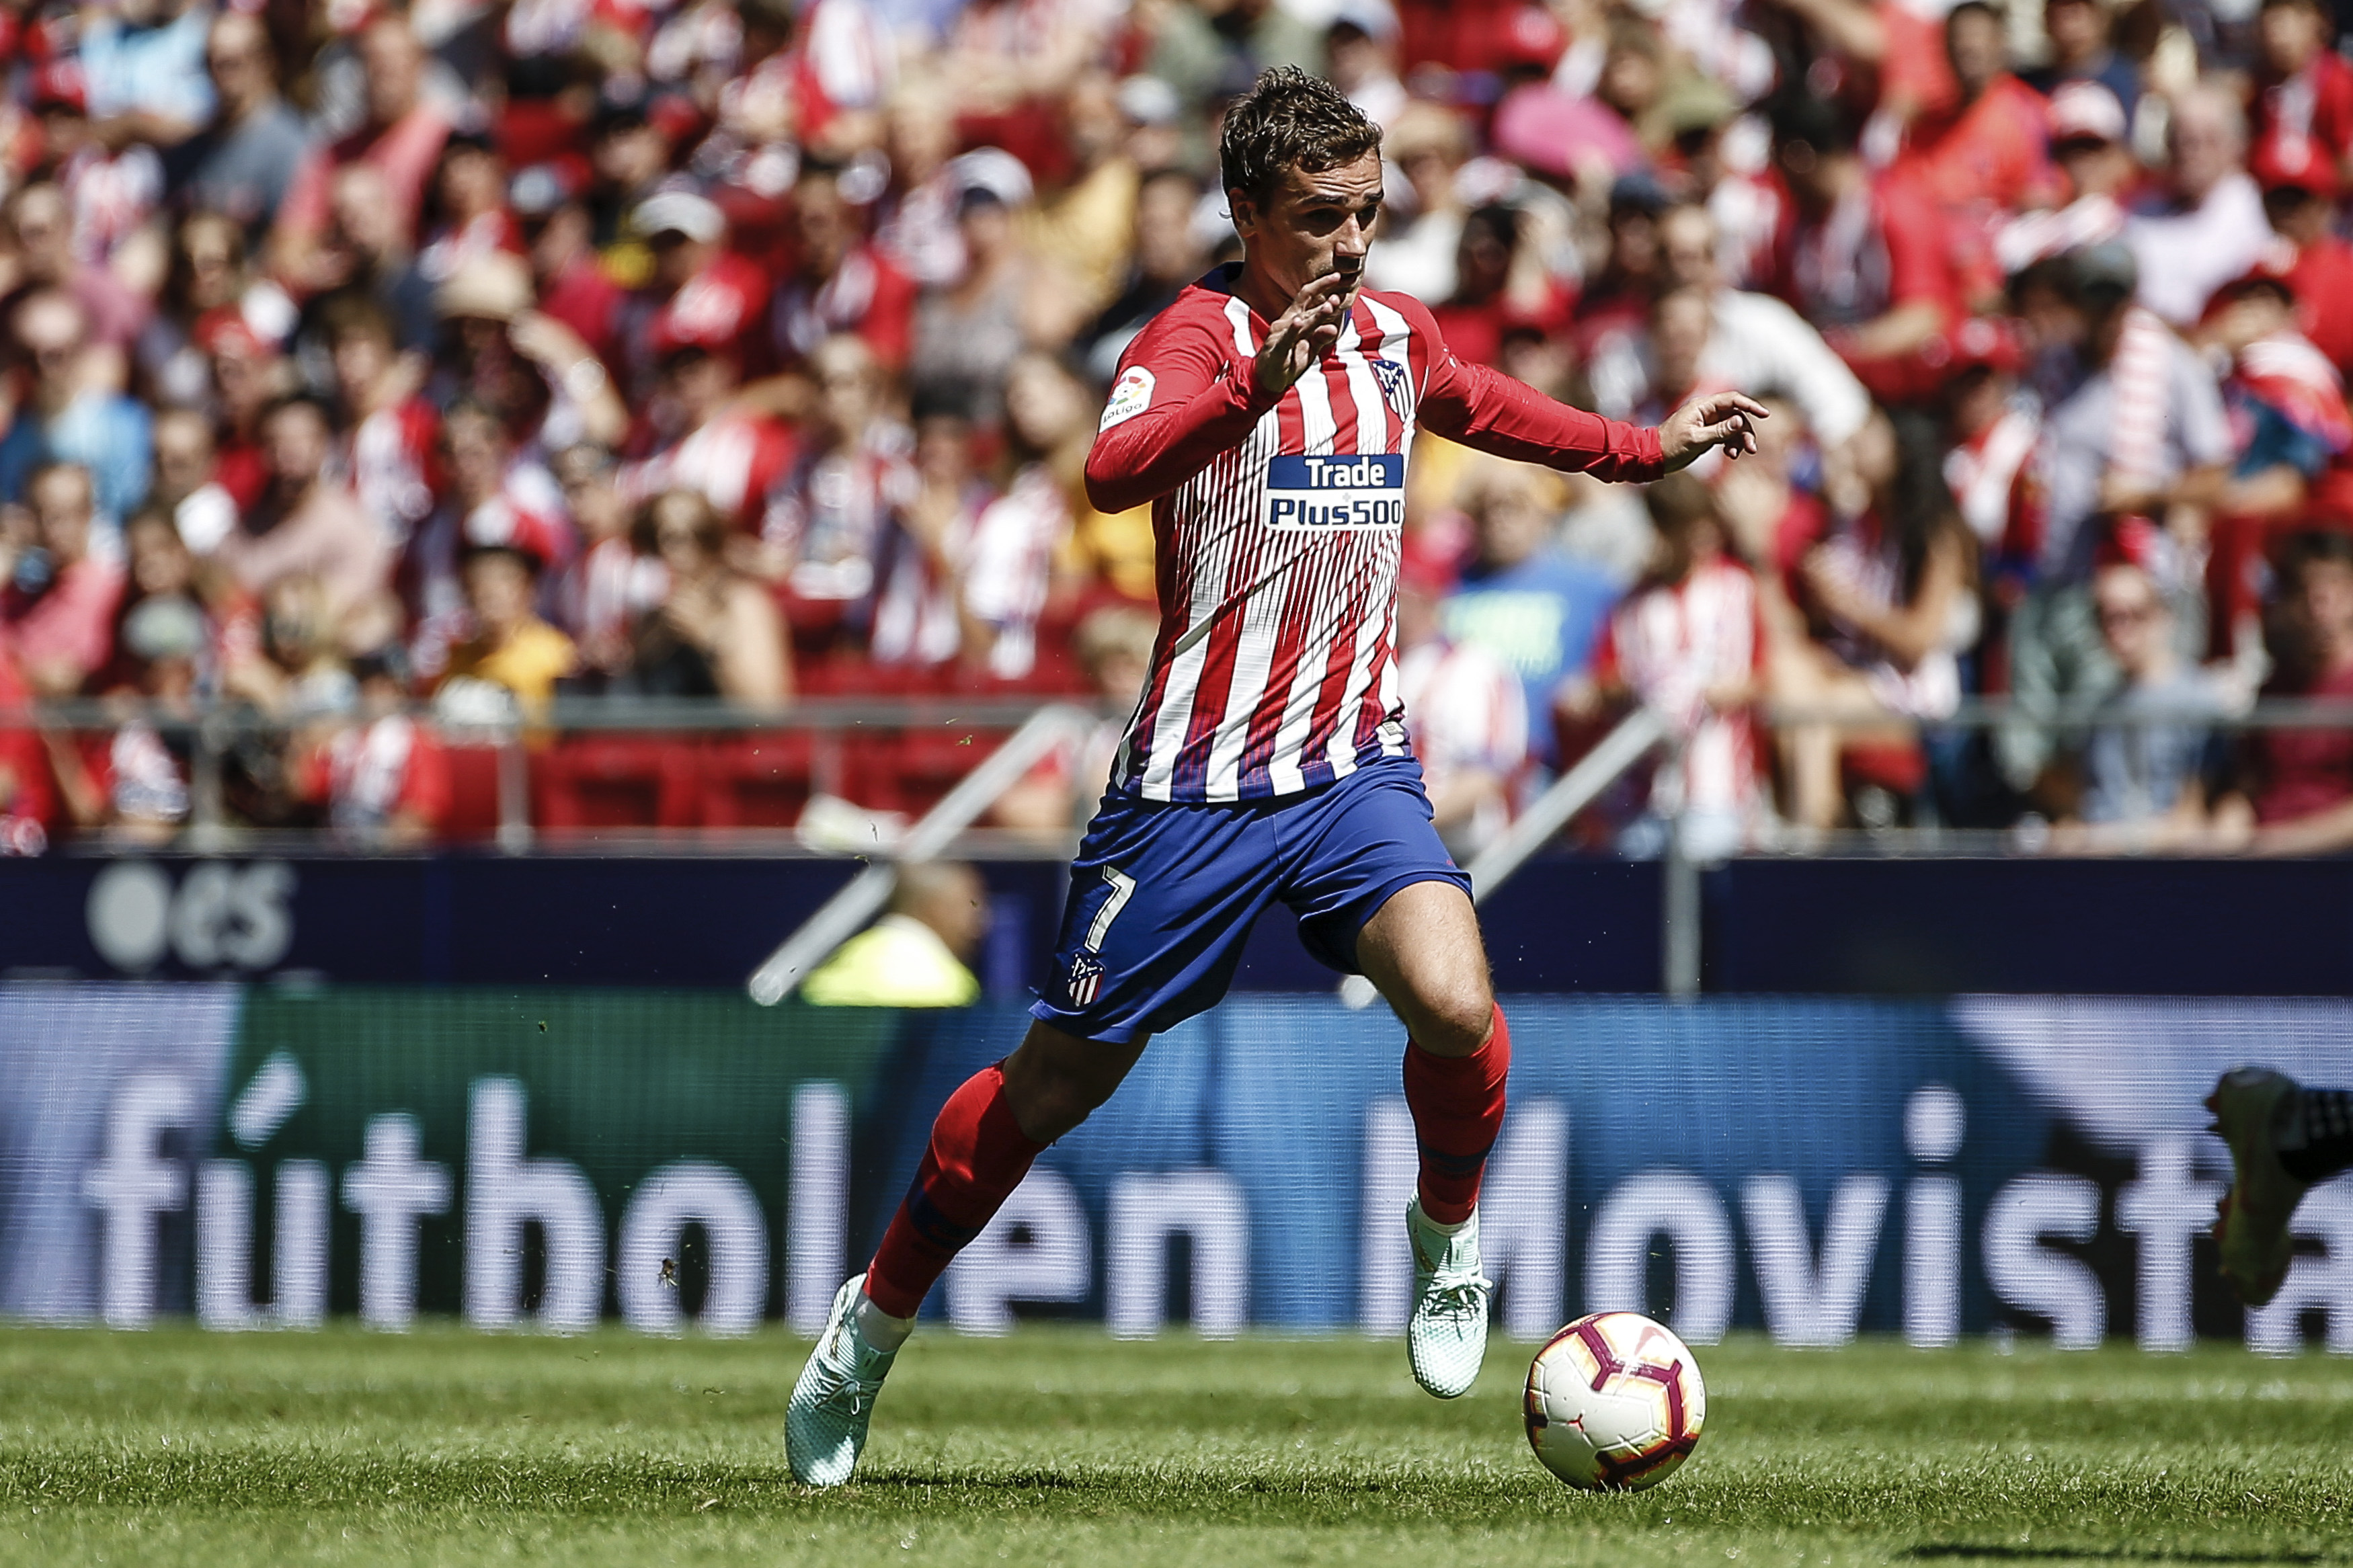 Football - Etranger - Liga : Getafe-Atlético Madrid en direct